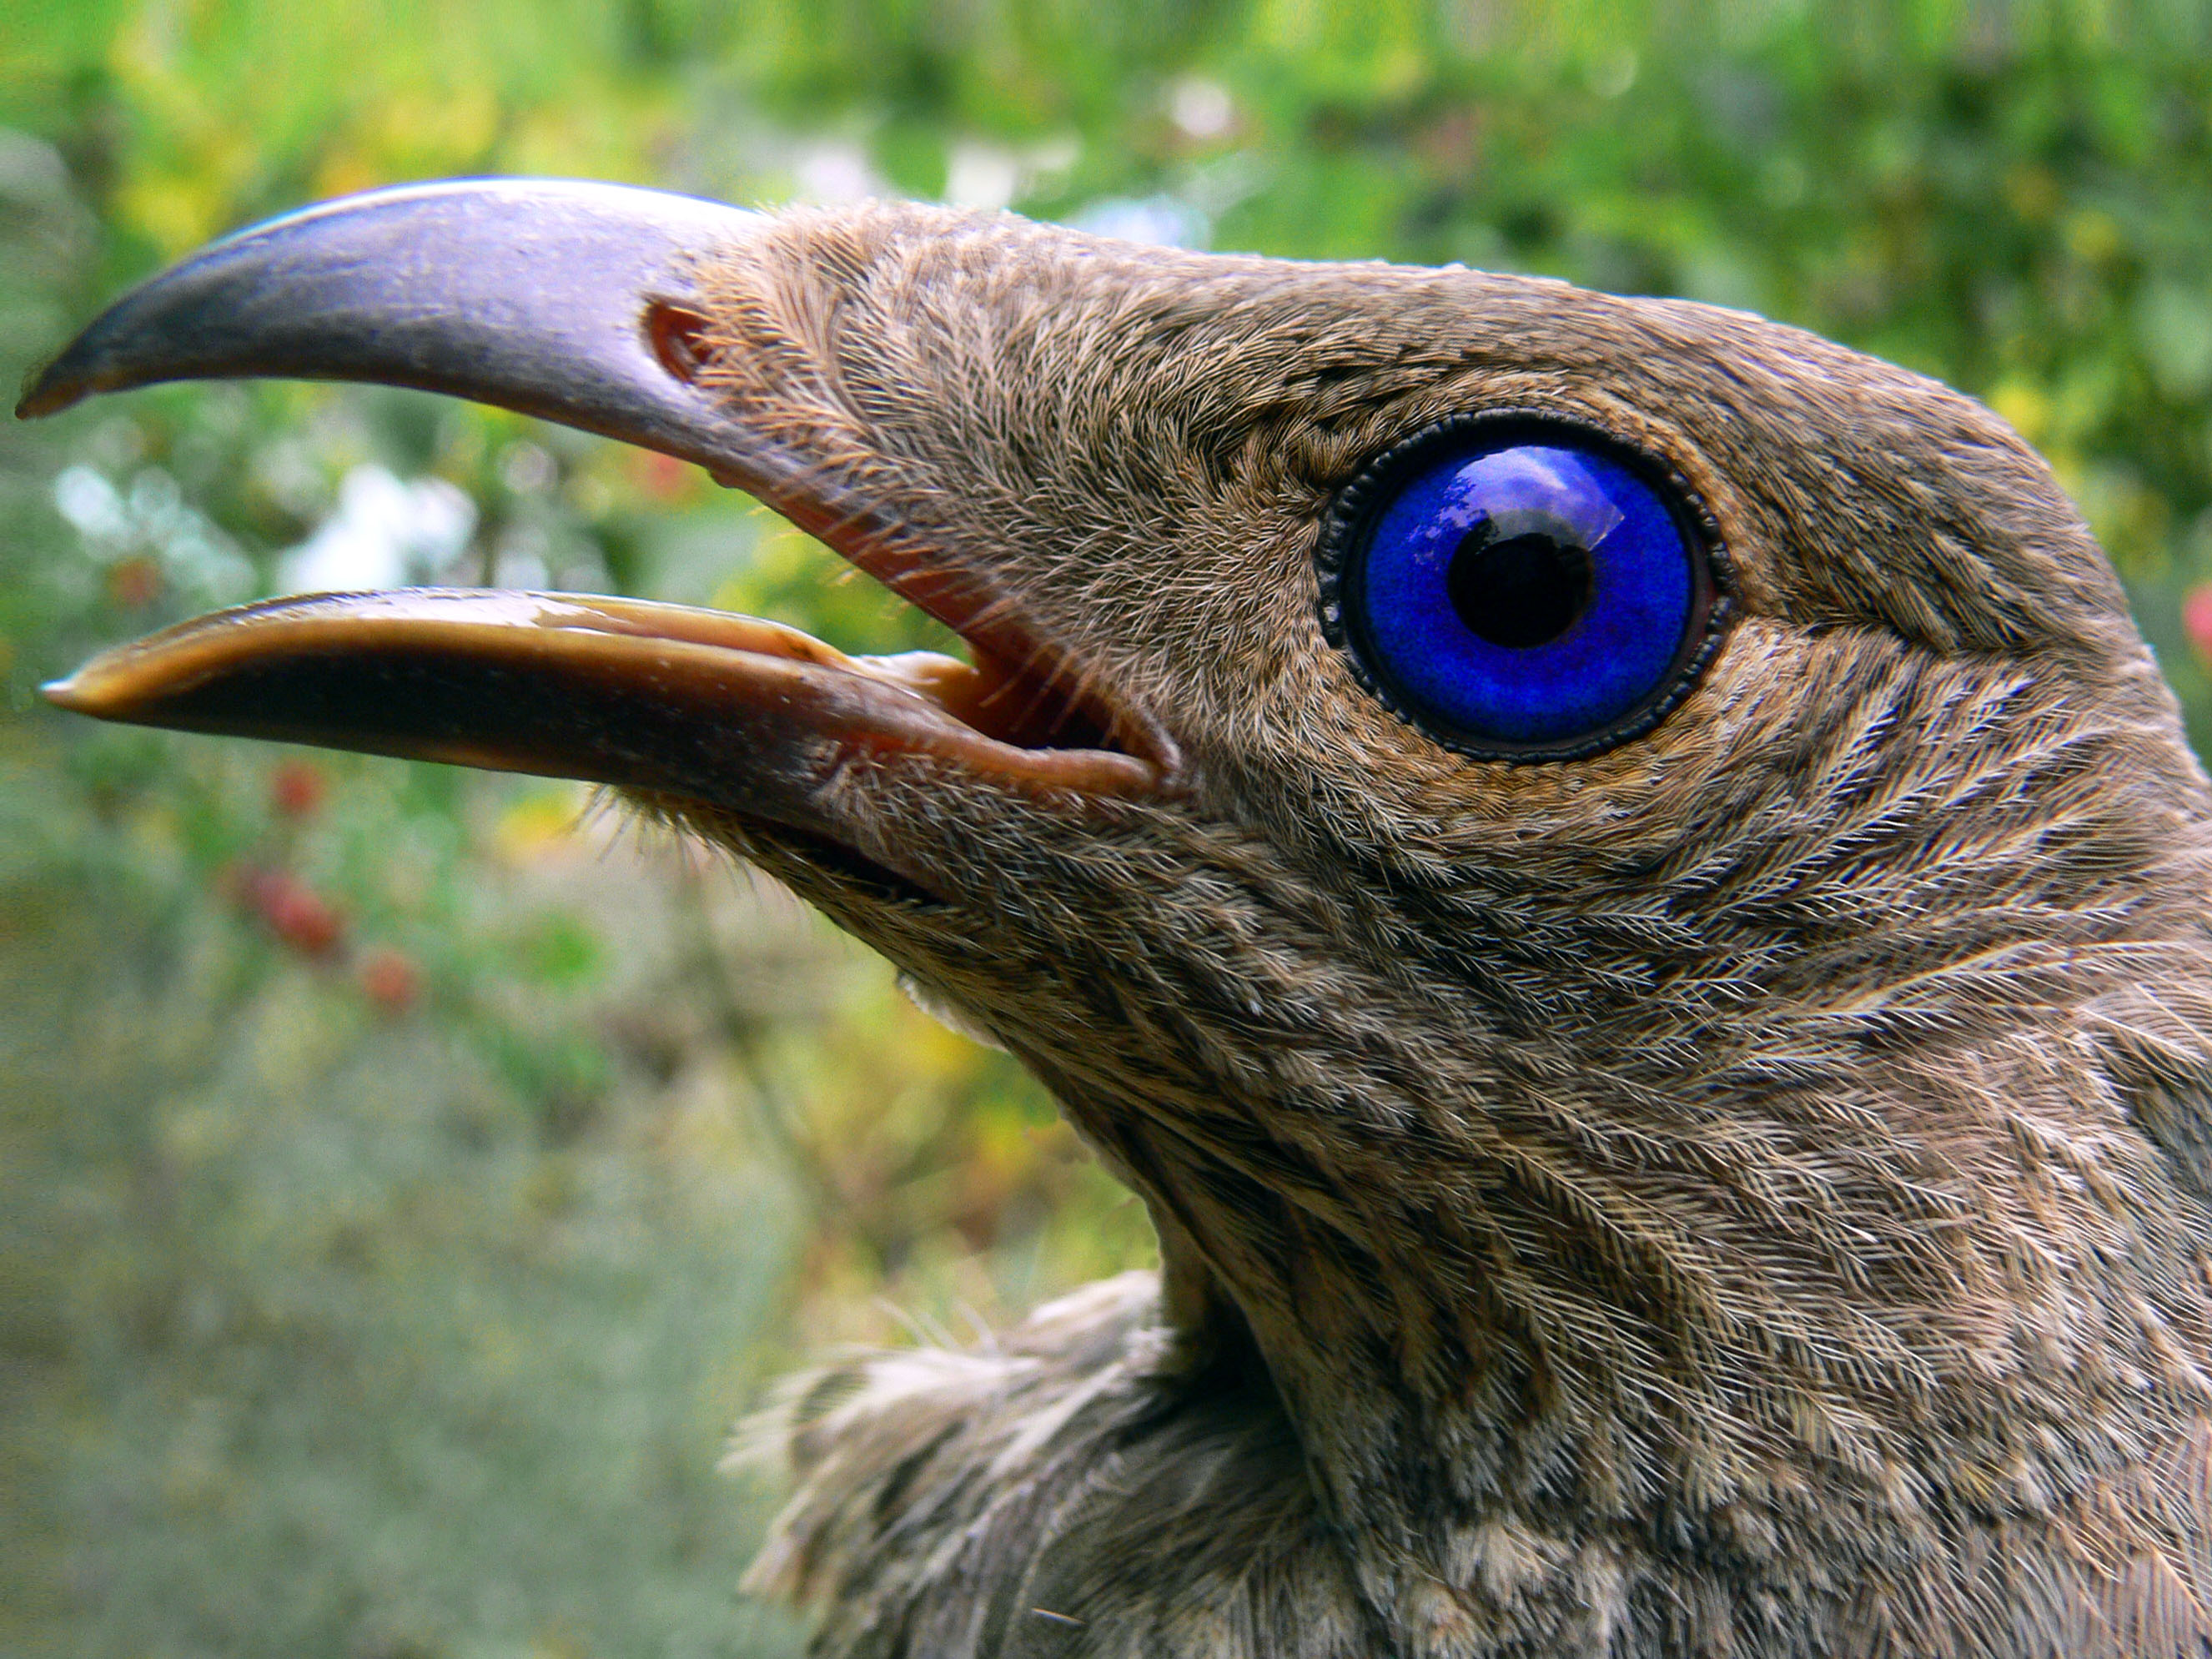 http://upload.wikimedia.org/wikipedia/commons/4/41/Satin_bowerbird.jpg